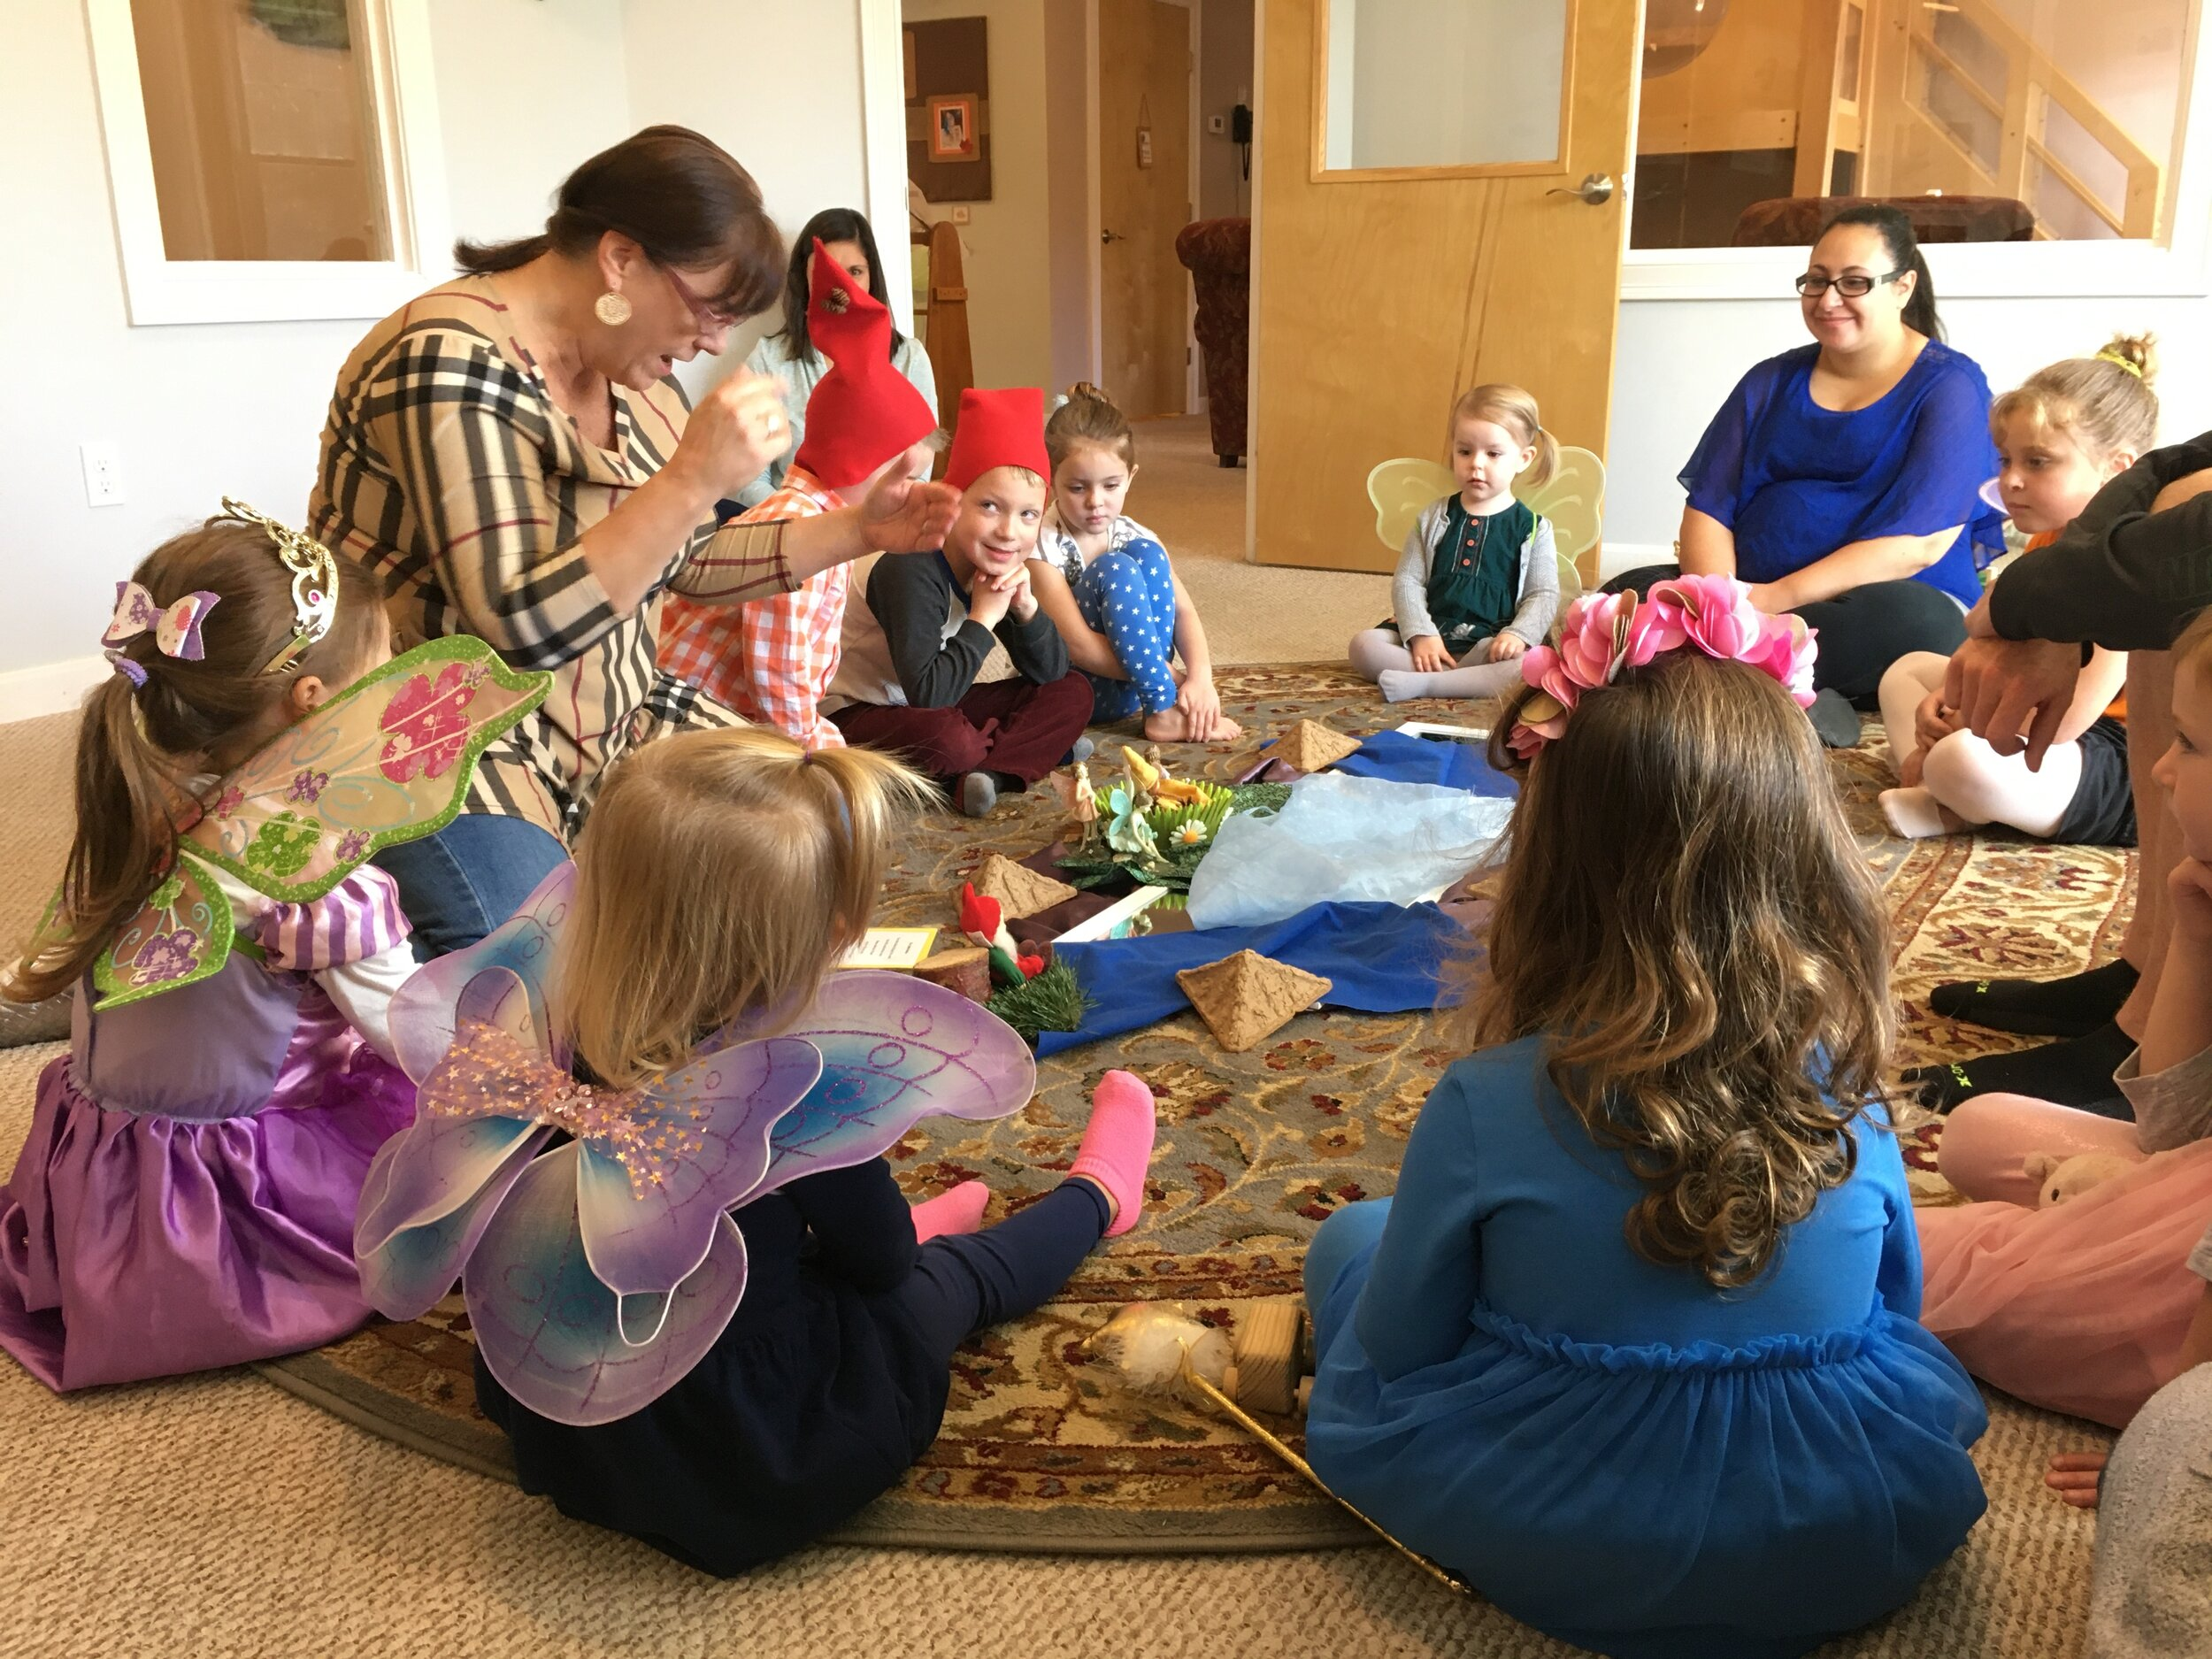 Gnome and Fairy Birthday Party for Kids Newburyport Harmony Natural Learning Center.jpg